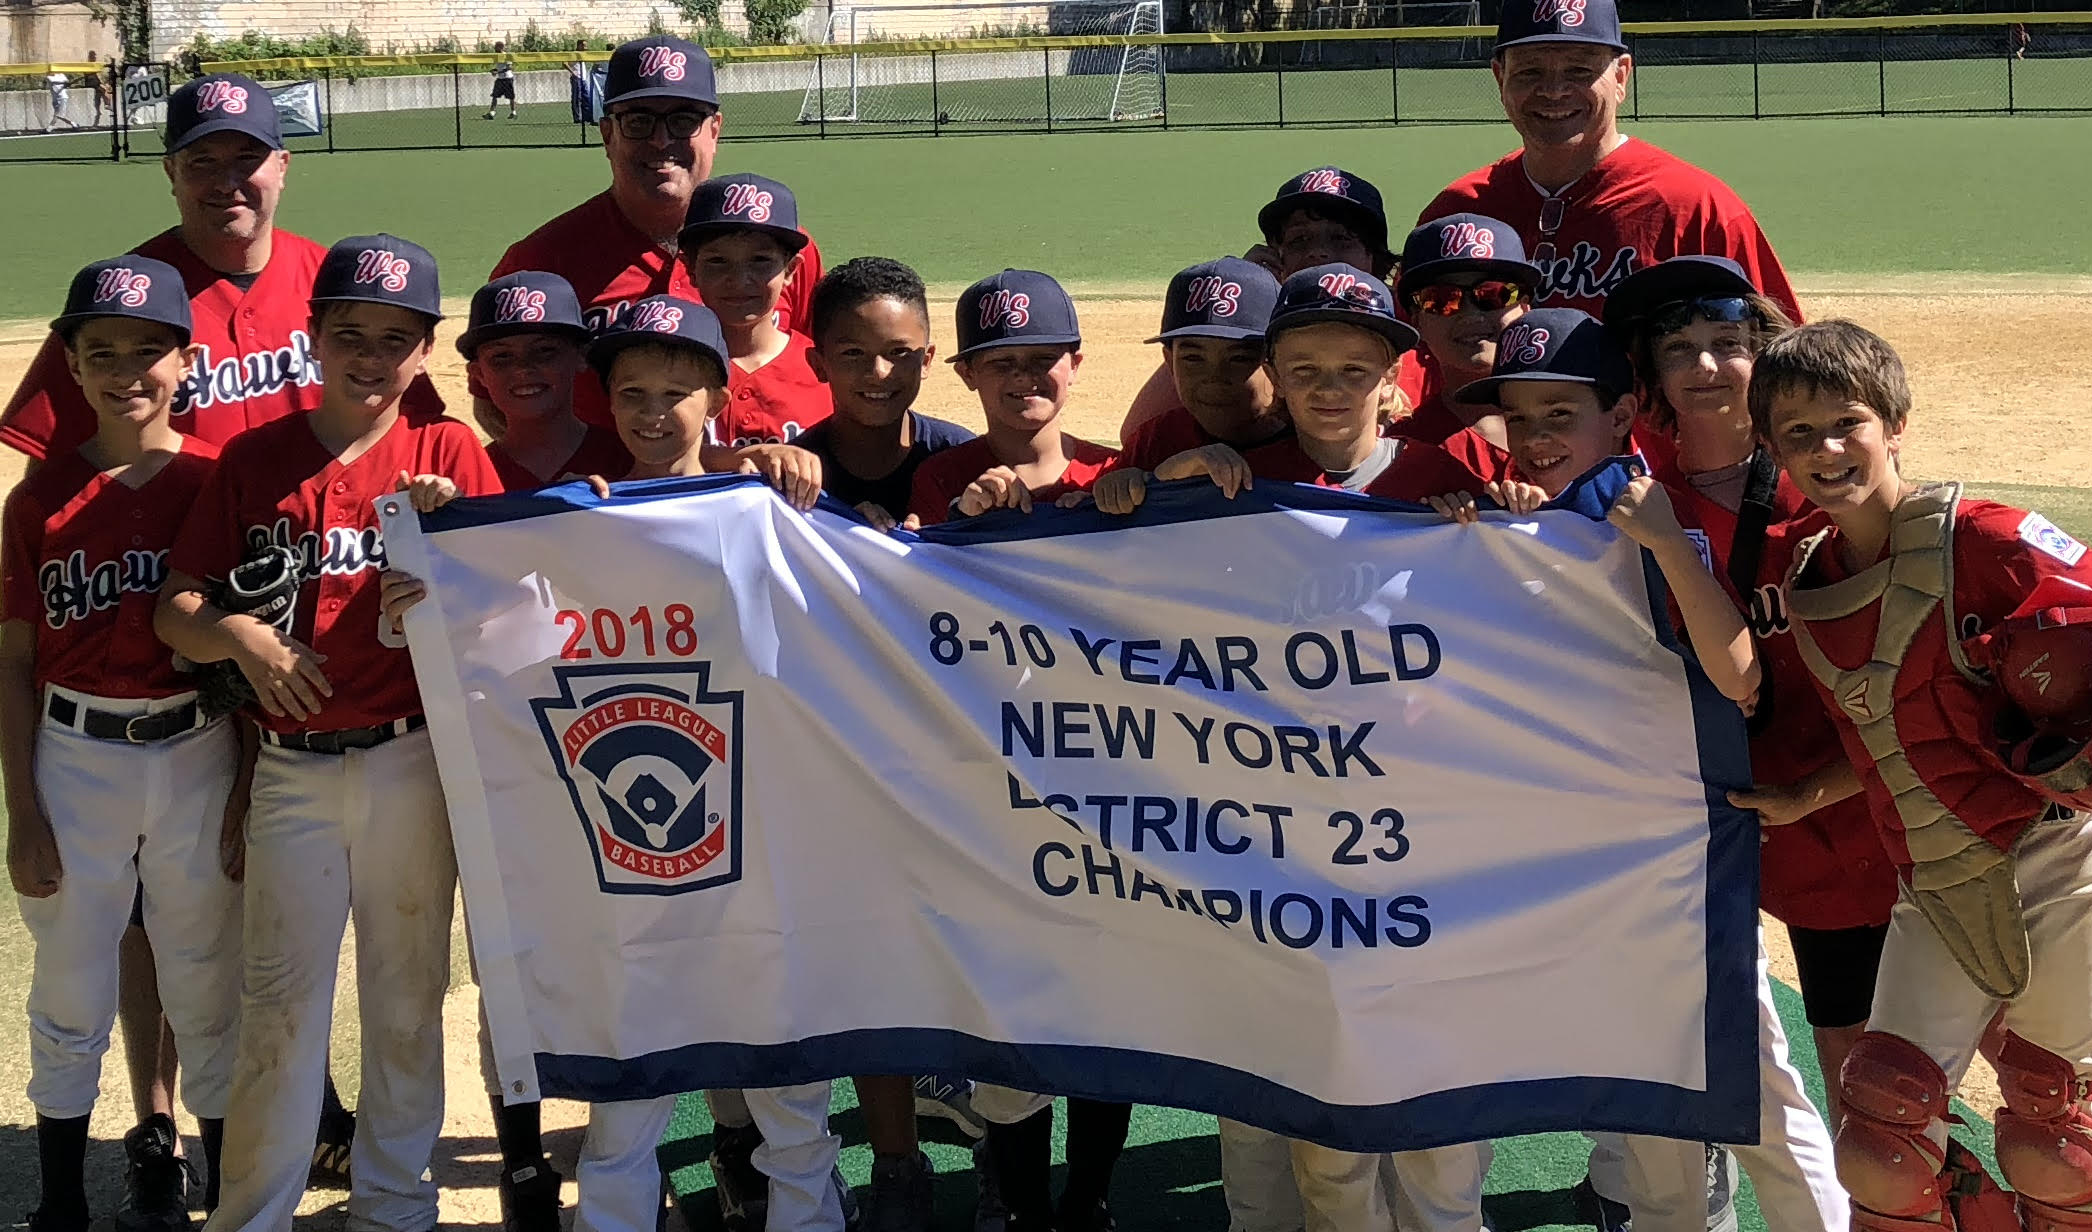 West Side Little League's 10u Tournament Team, The Hawks, WON the 8-10 YEAR OLD NEW YORK 2018 District 23 CHAMPIONSHIP!